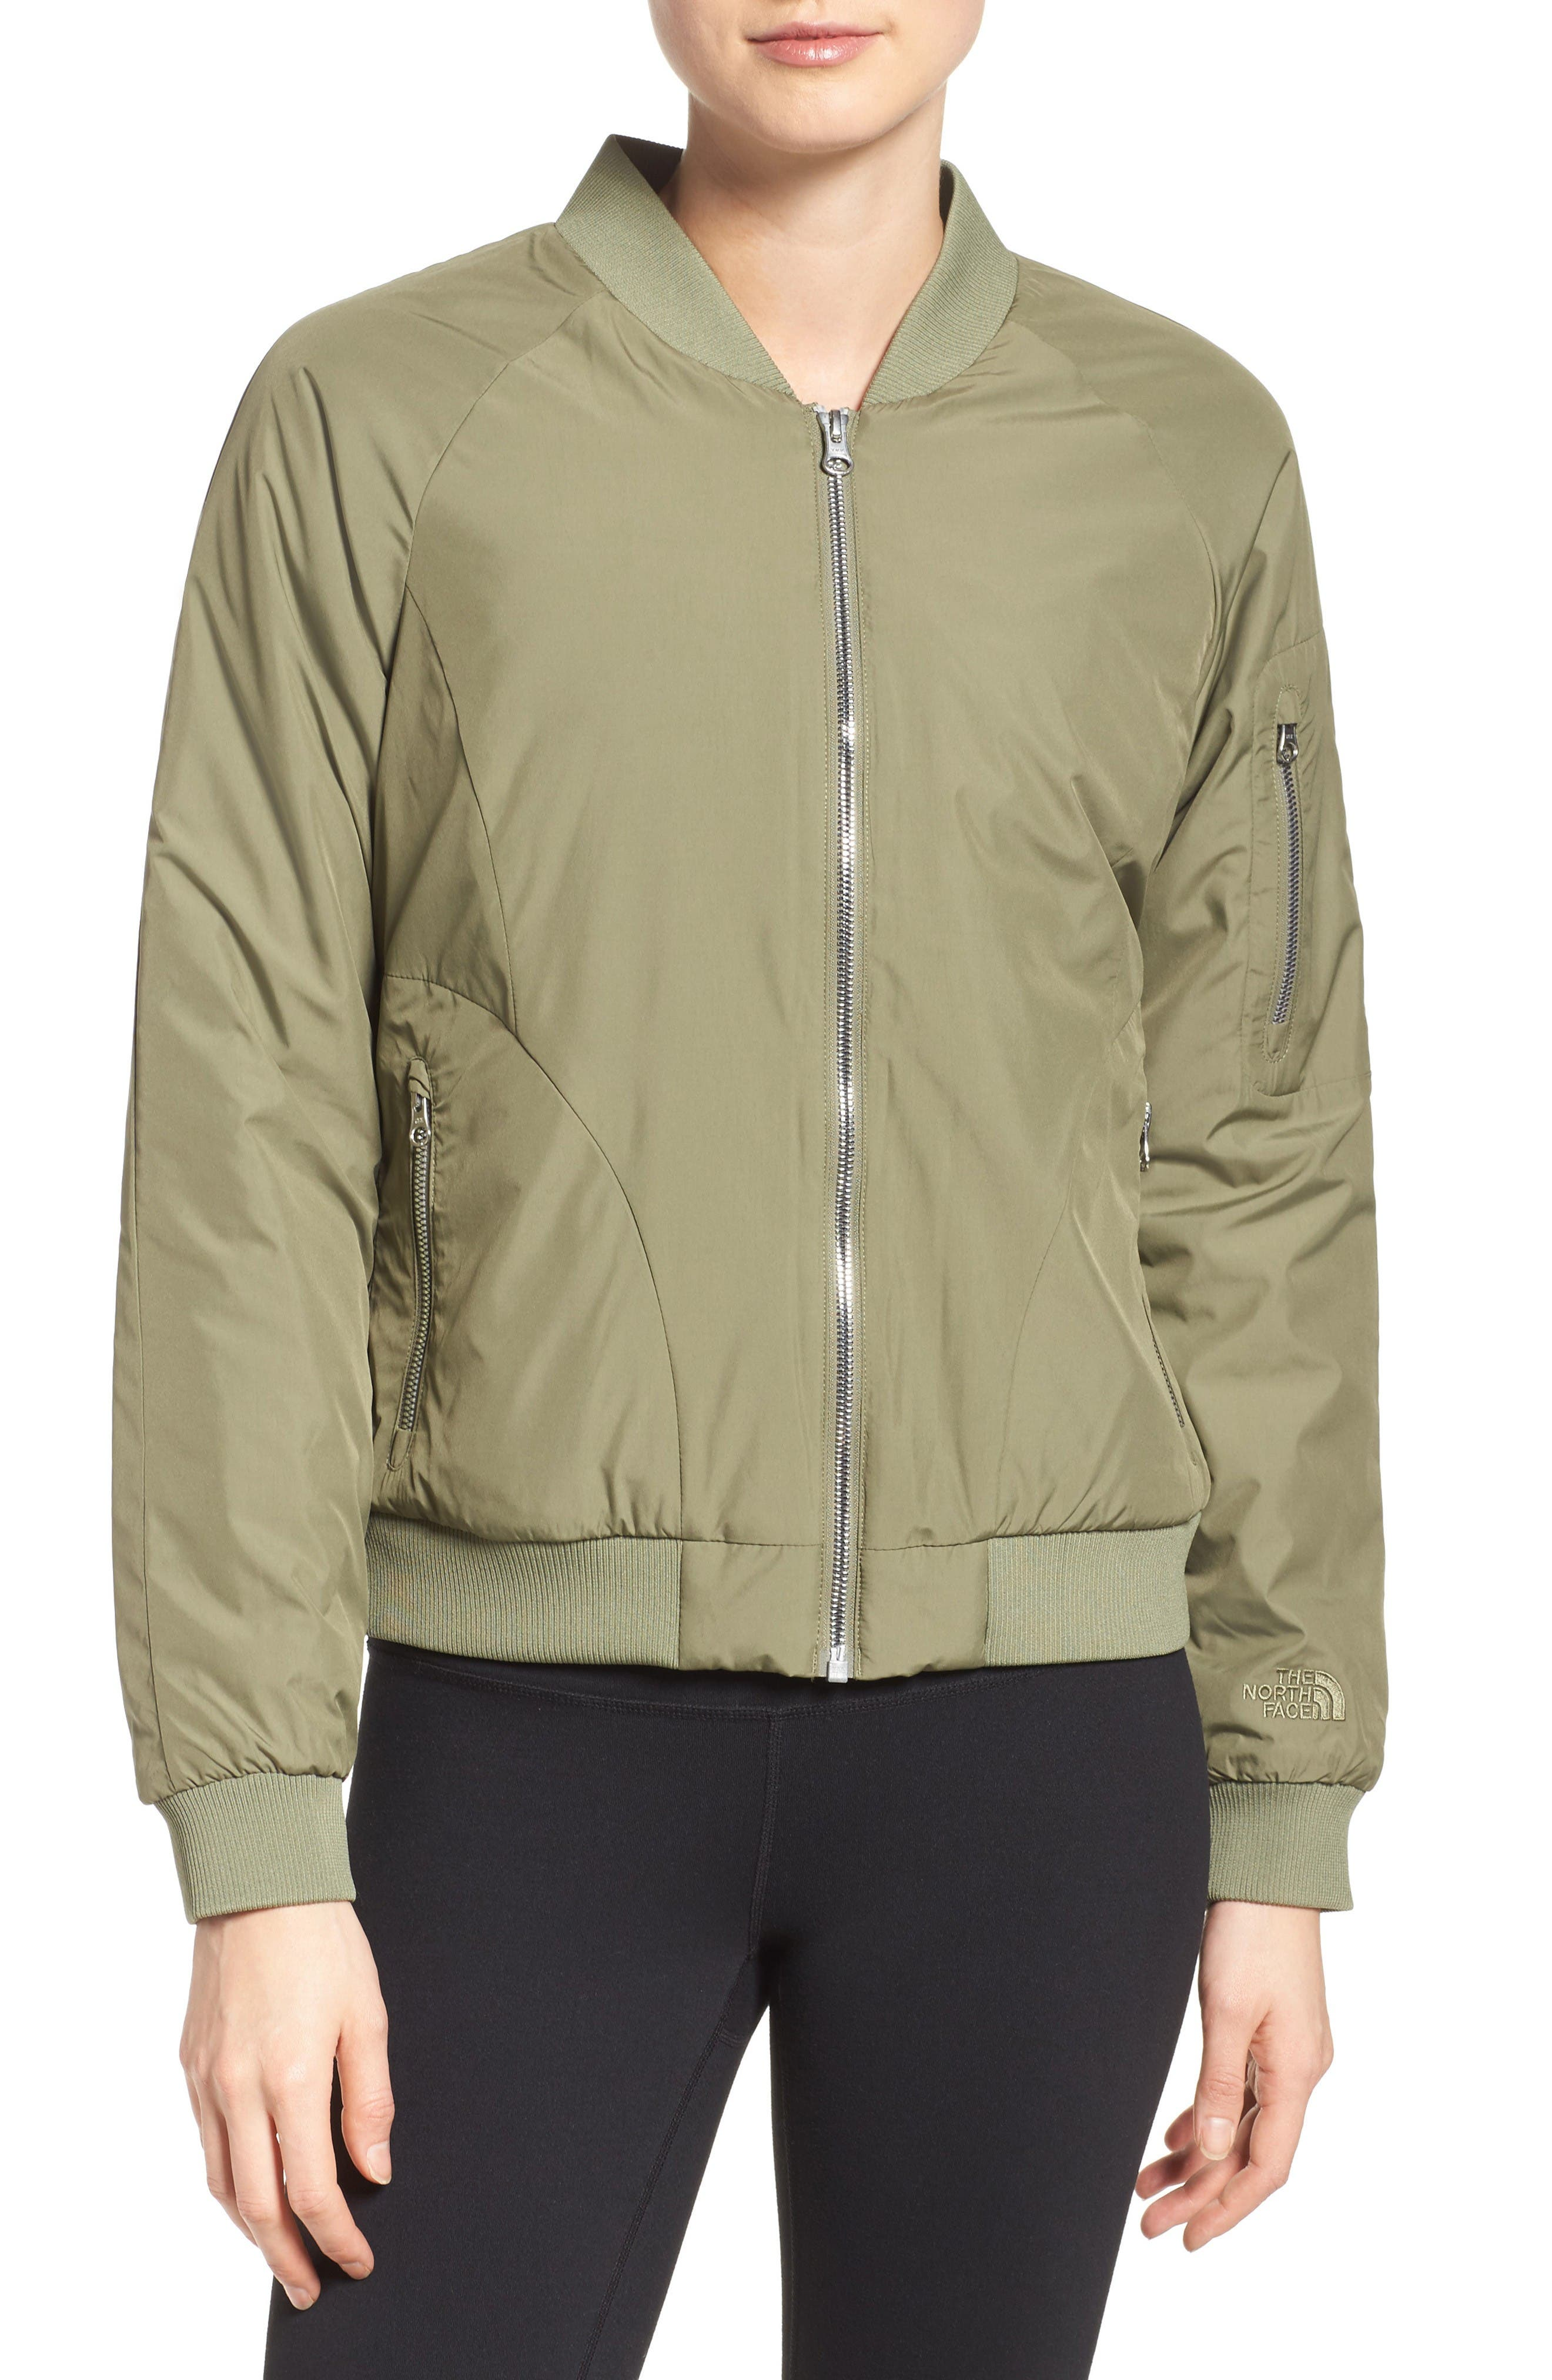 Alternate Image 1 Selected - The North Face 'Rydell' Water Resistant Heatseeker™ Insulated Bomber Jacket